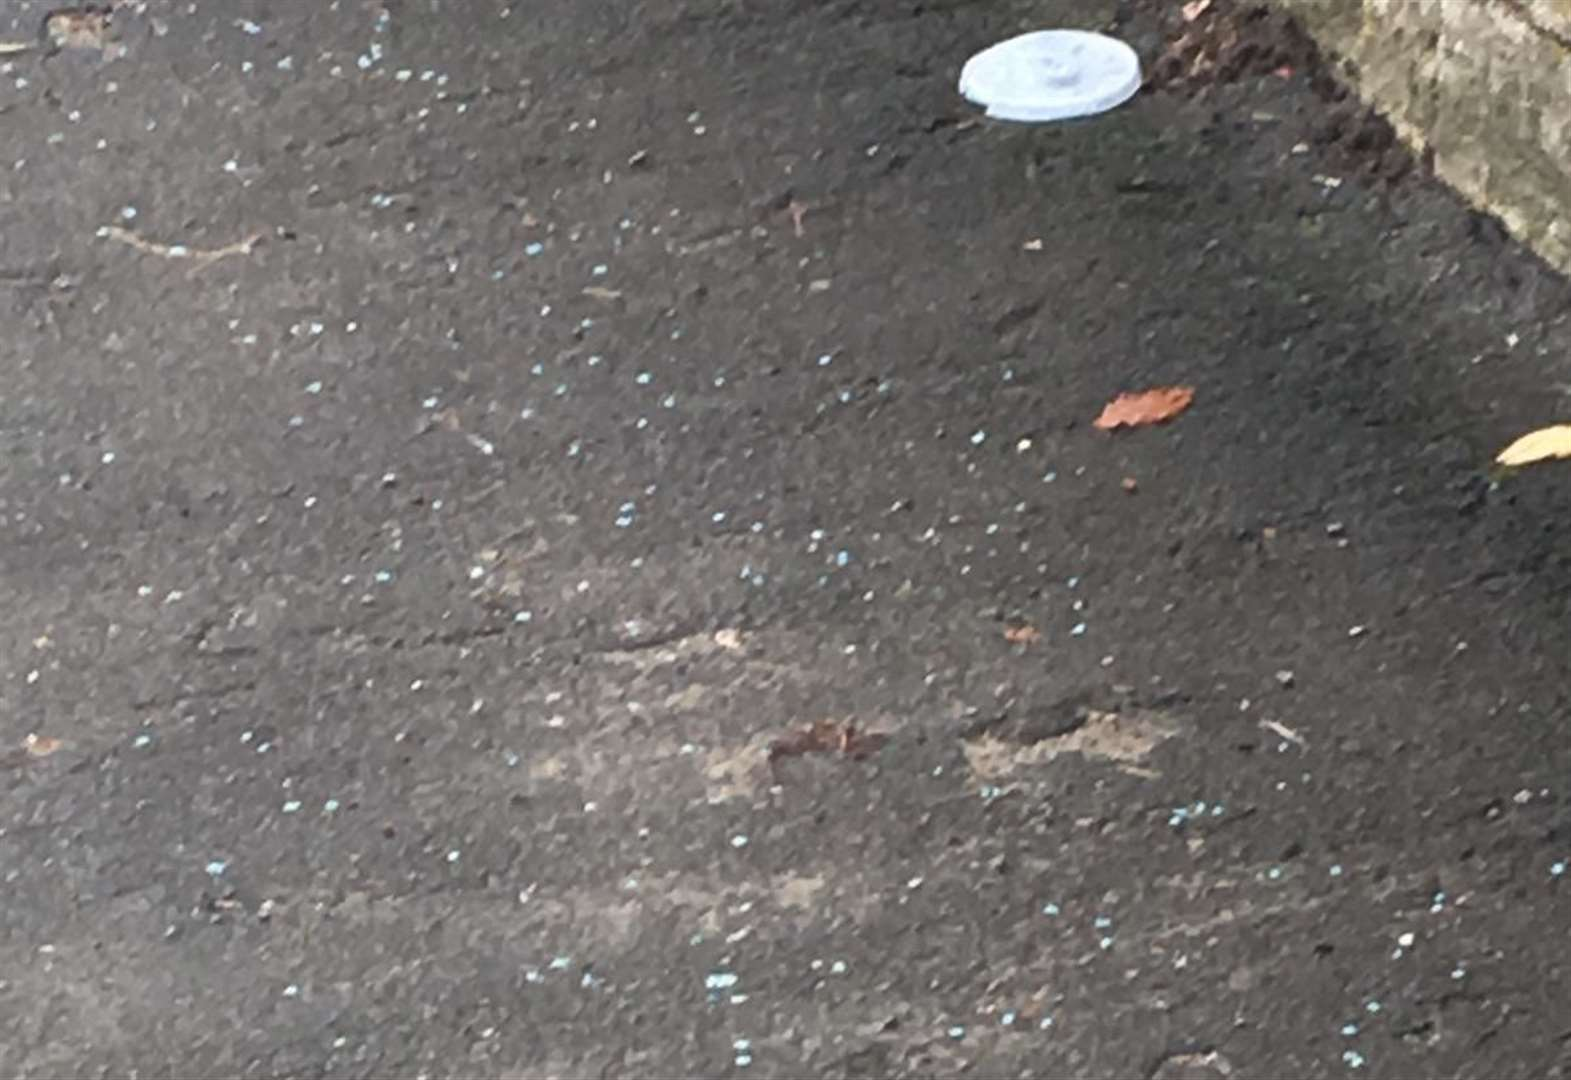 Residents raise fears over 'blue pellets' on pavements